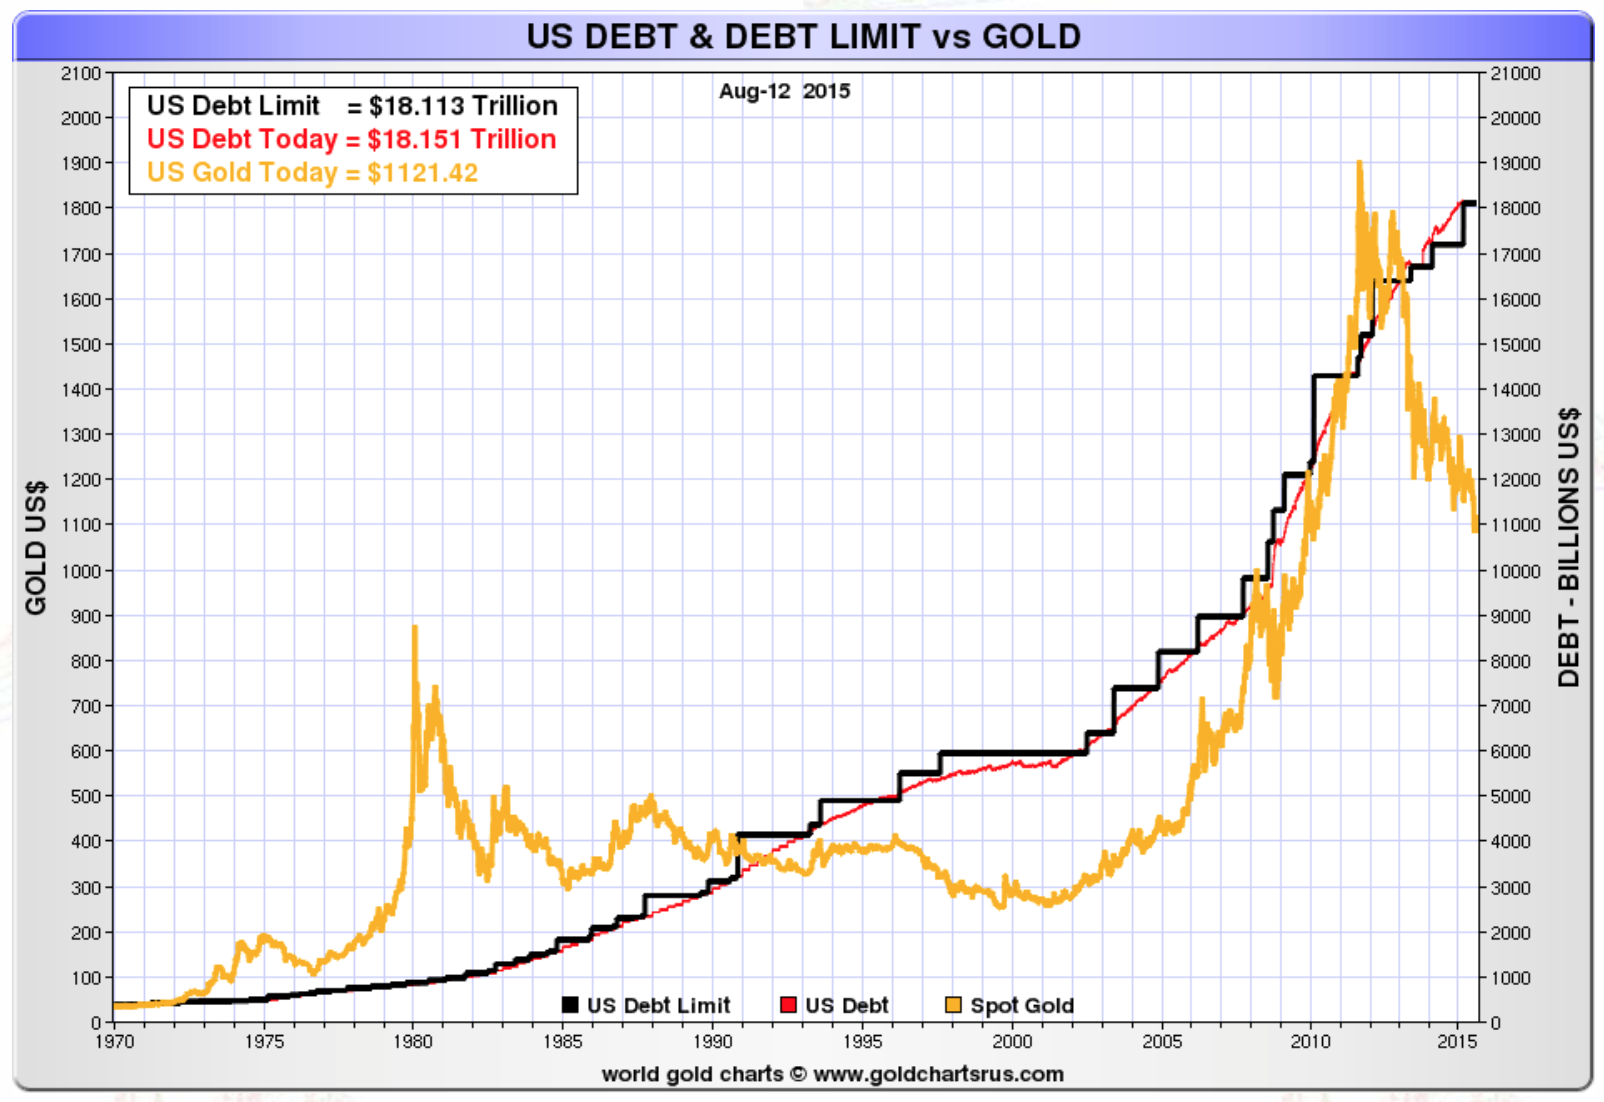 US debt and debt limit vs gold